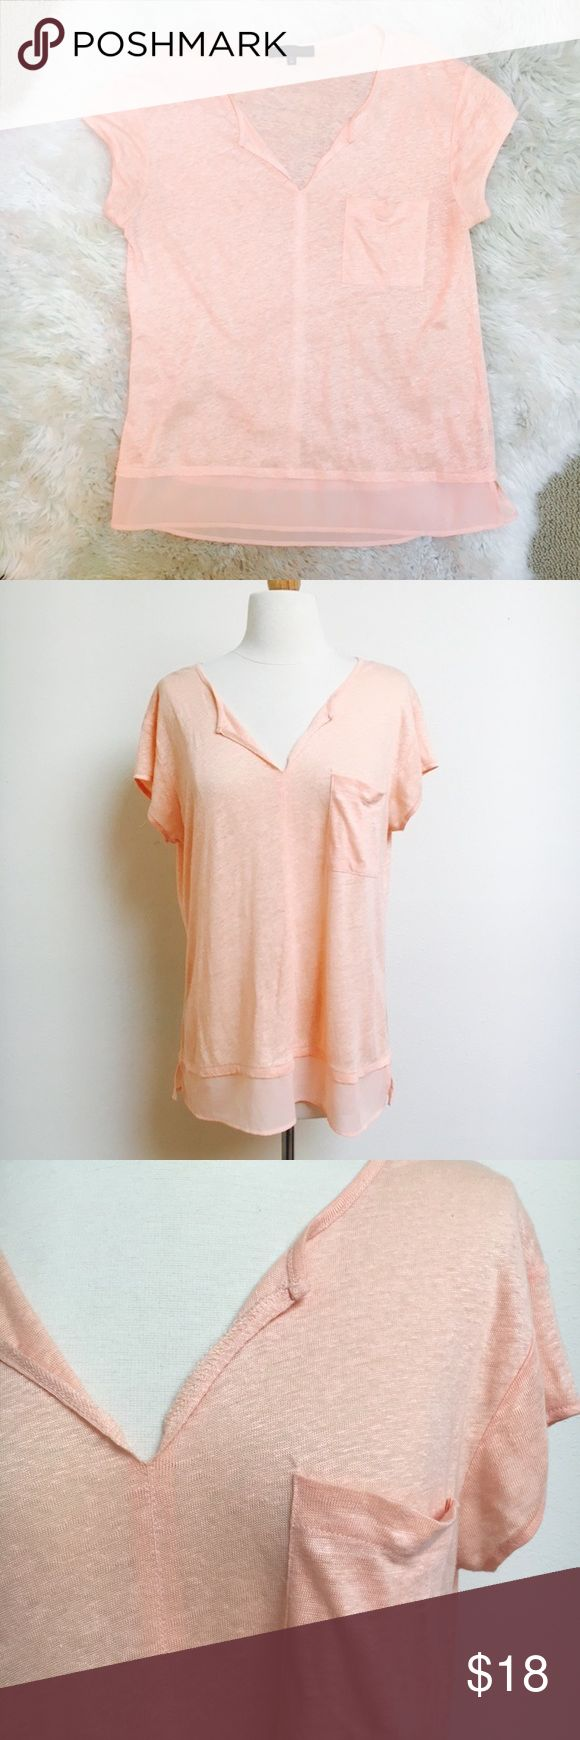 Peach Pocket Tee Lightweight pocket tee from sanctuary with a pocket on the front and a sheer trim on the bottom. The shirt is a little more peach colored than is showing up in the photos, but it's definitely subdued. Excellent condition! Sanctuary Tops Tees - Short Sleeve